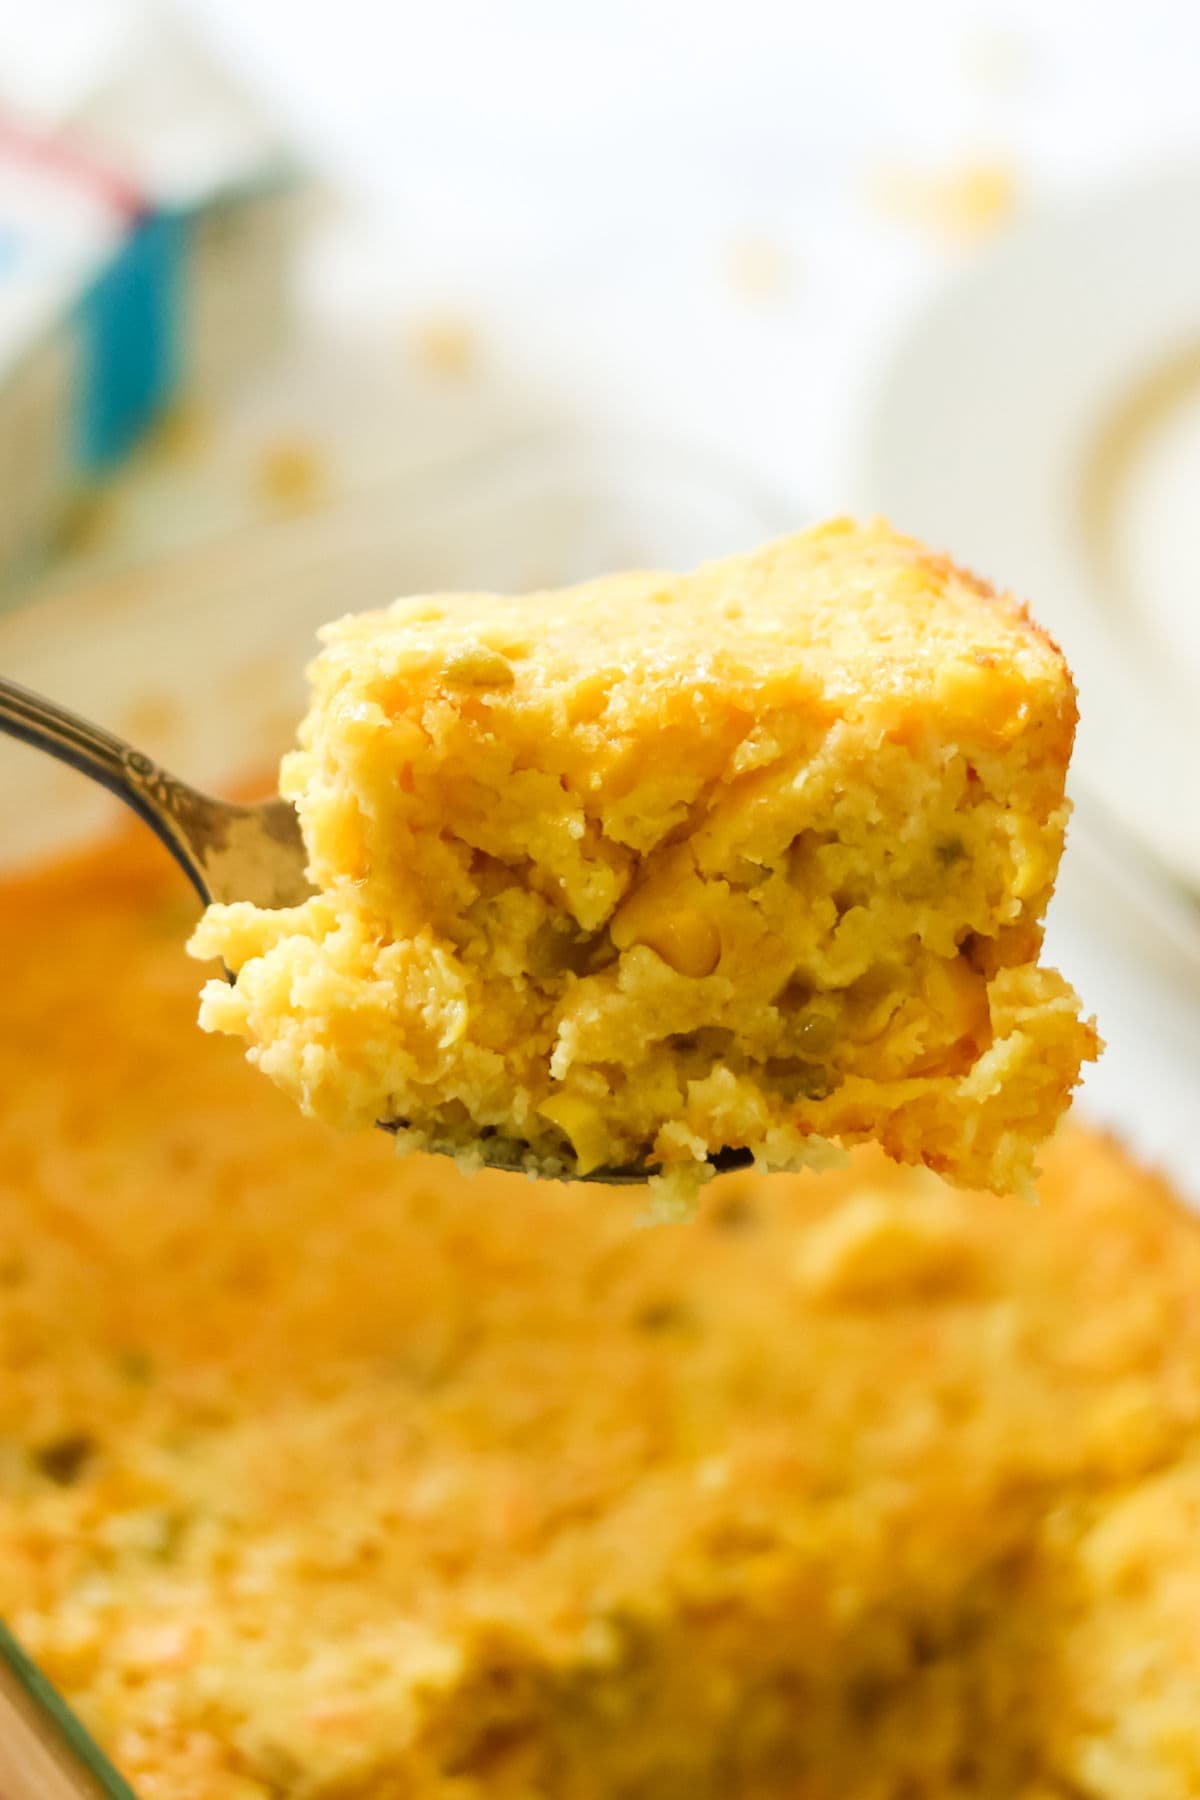 A serving of creamy corn casserole is lifted from the dish.